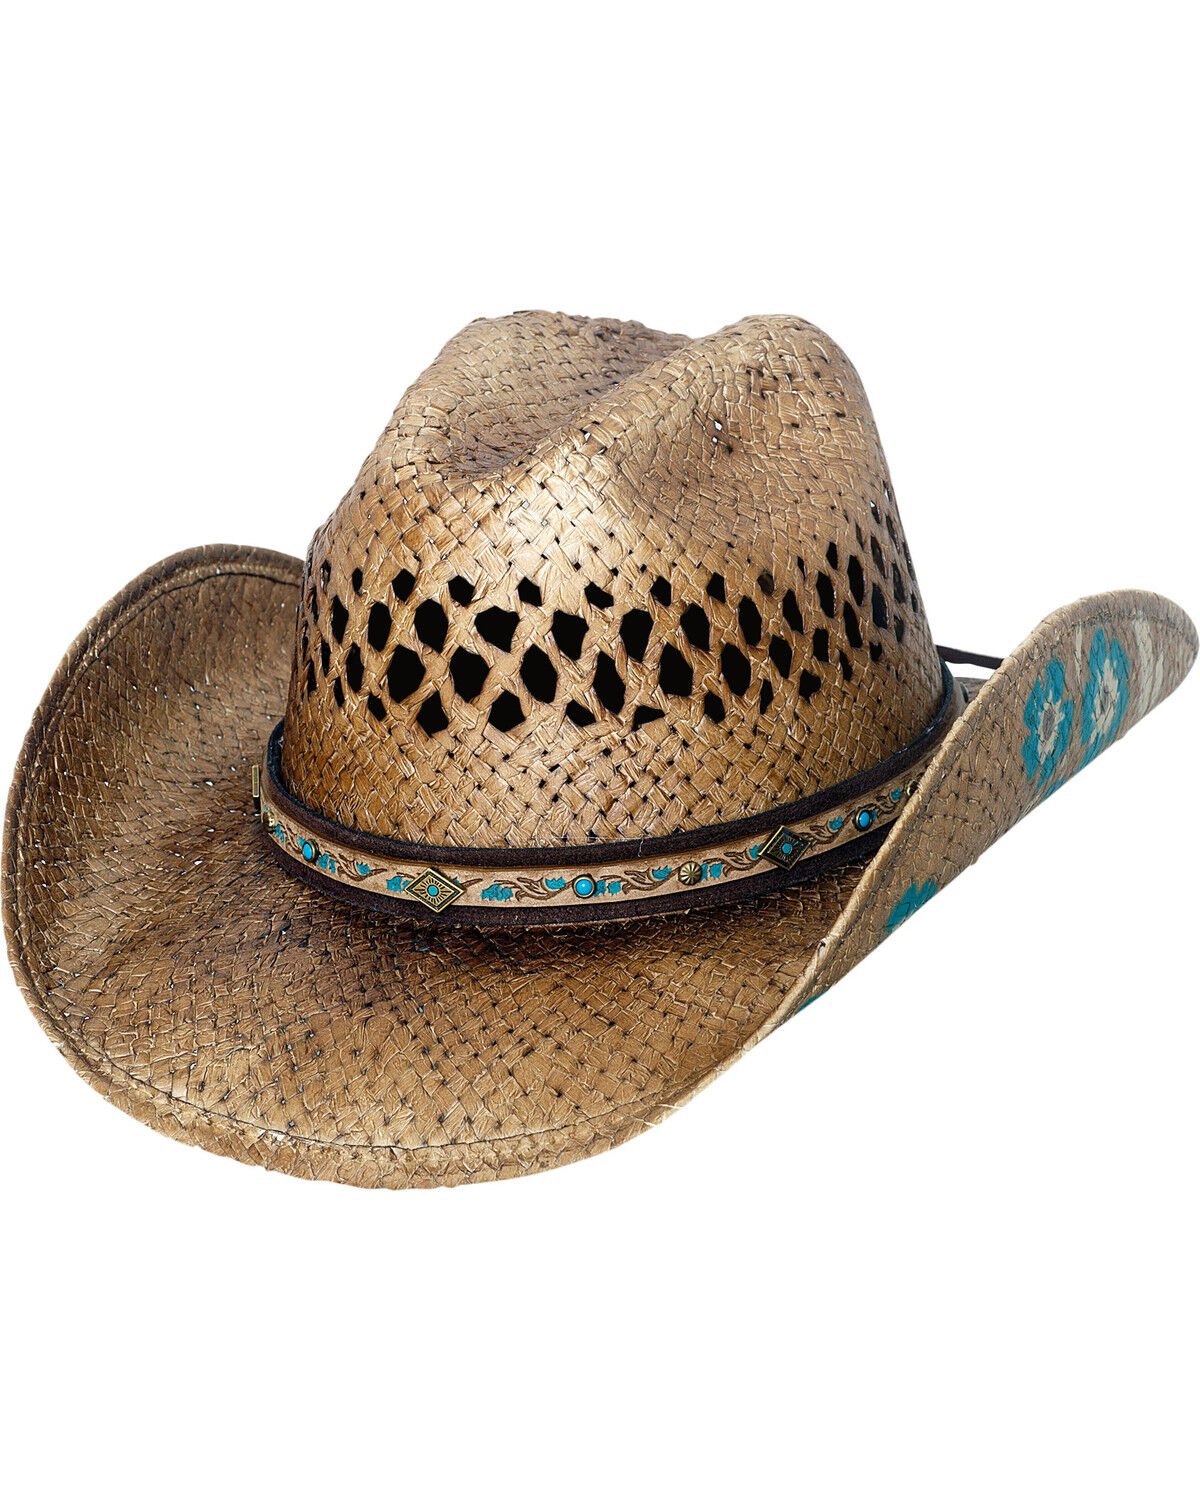 9d2852cd4474c Women s Straw Western Hats